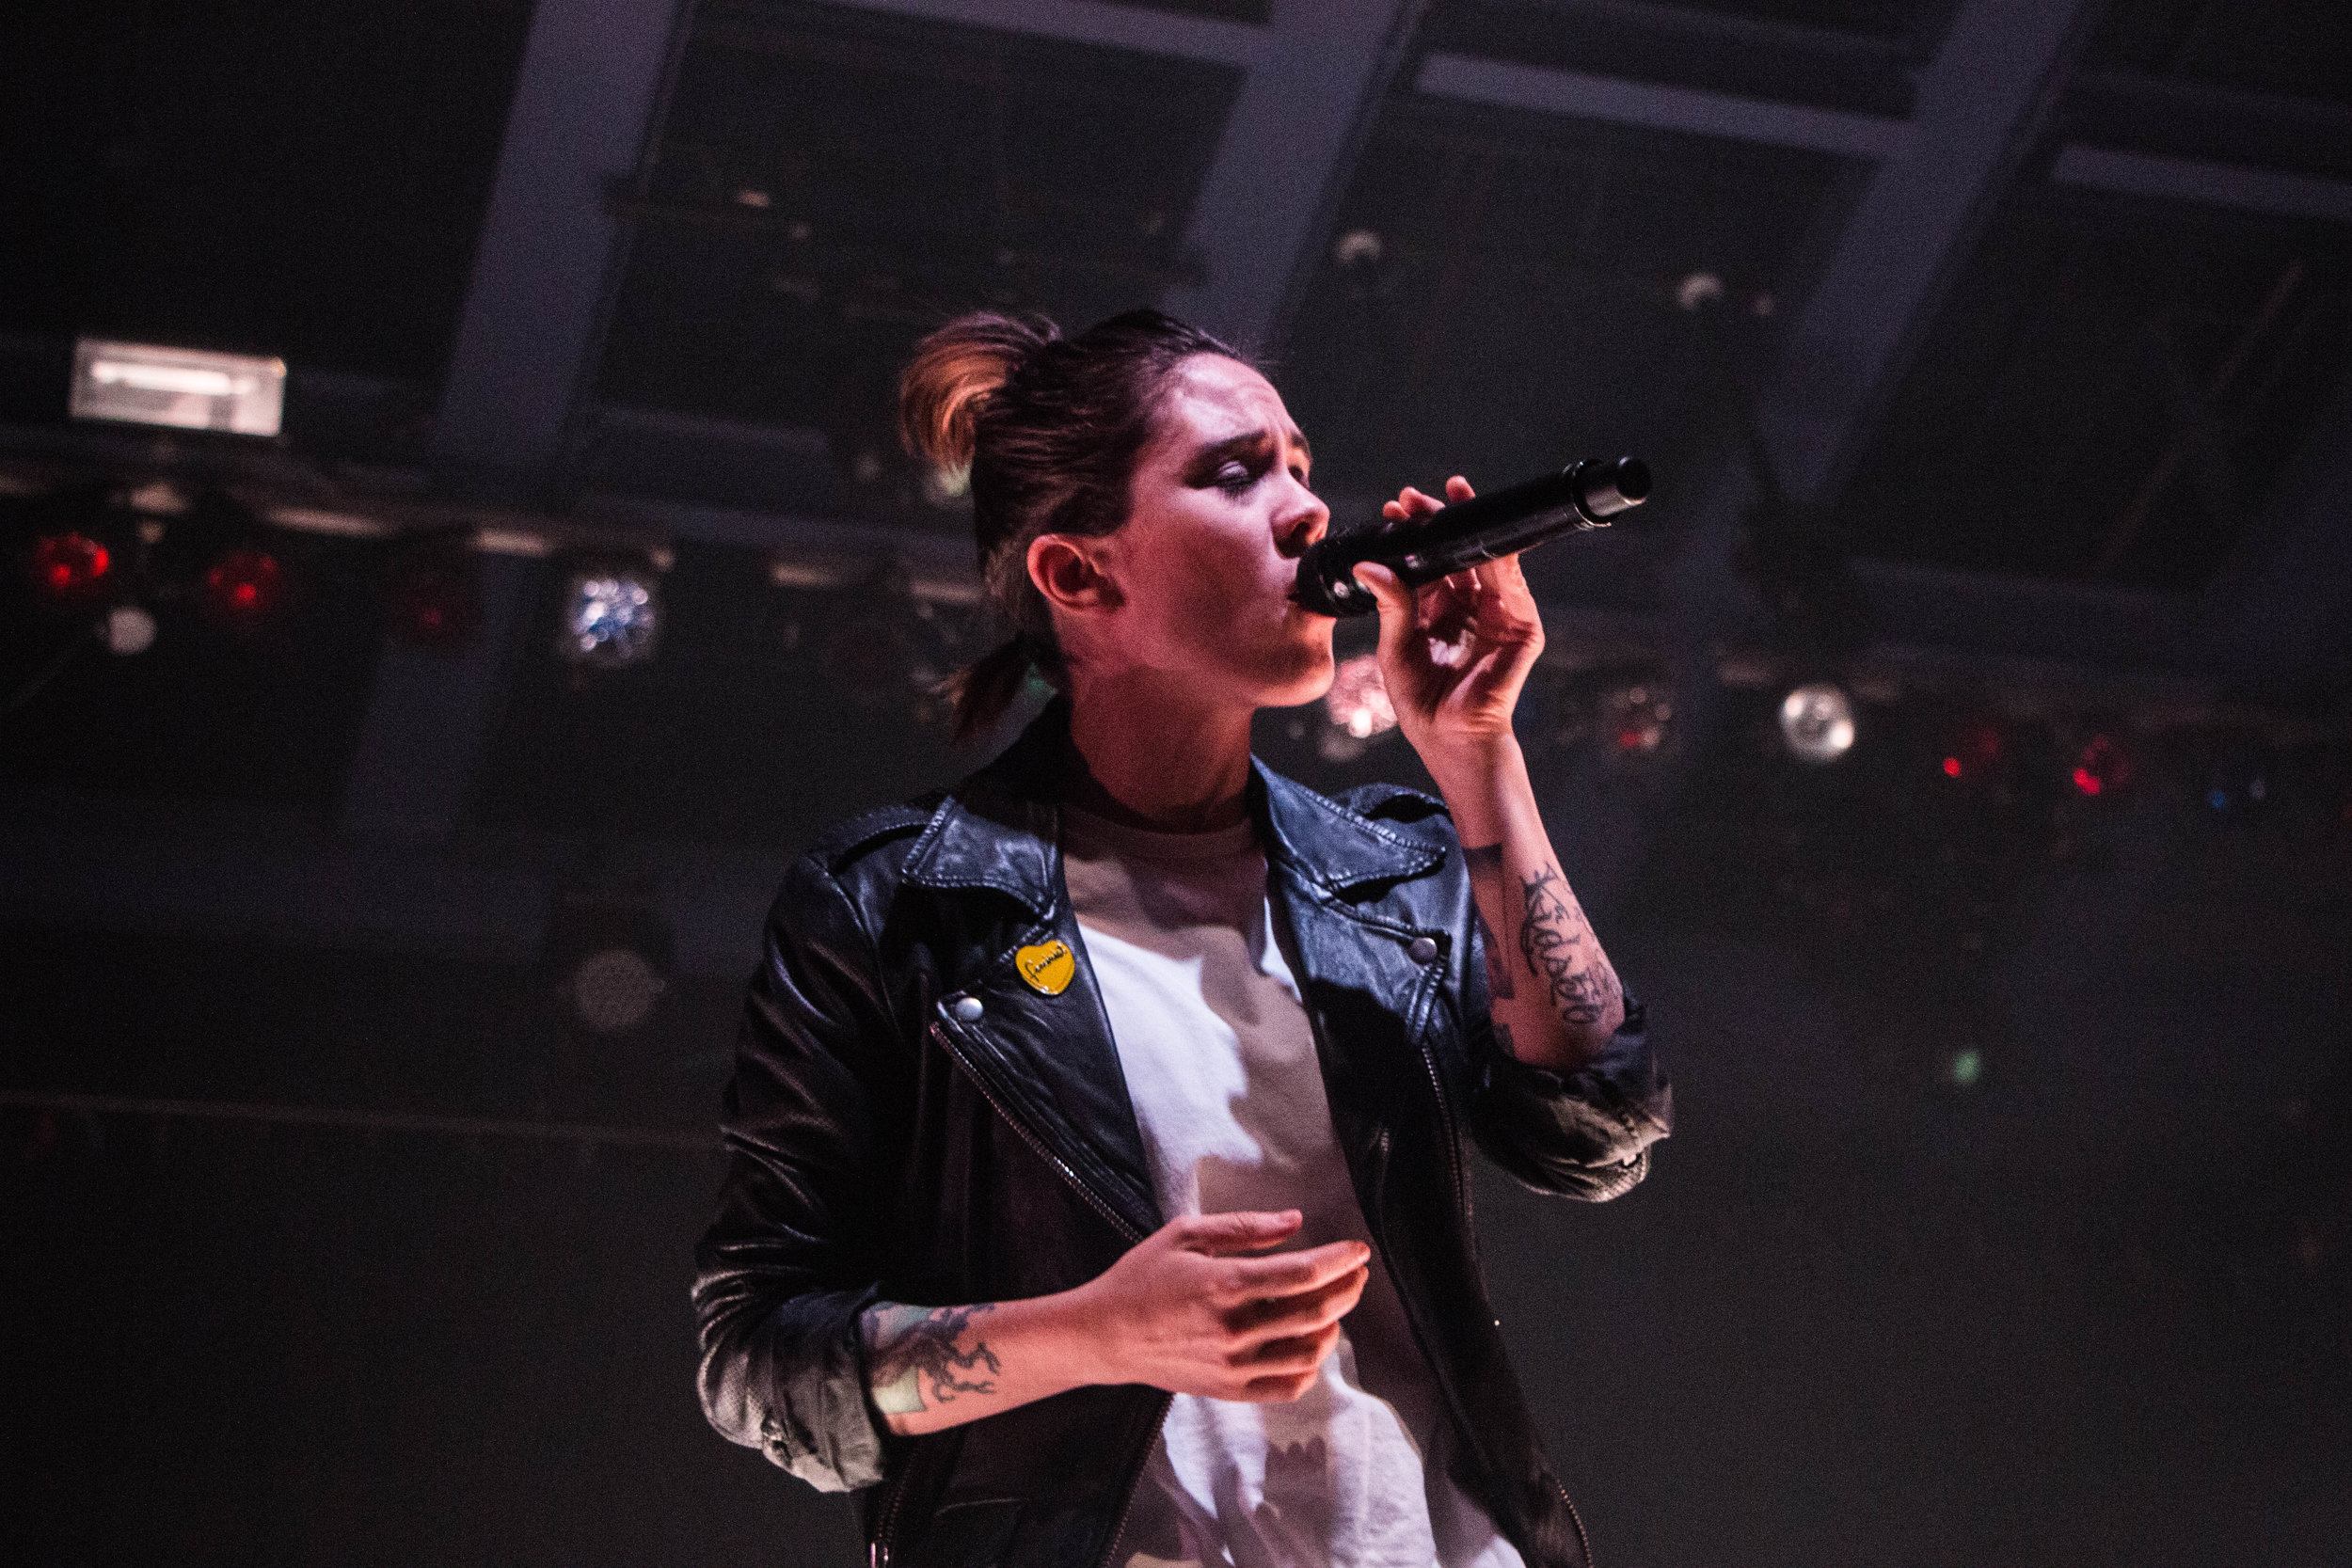 Tegan (Photo by Oscar Rendon)